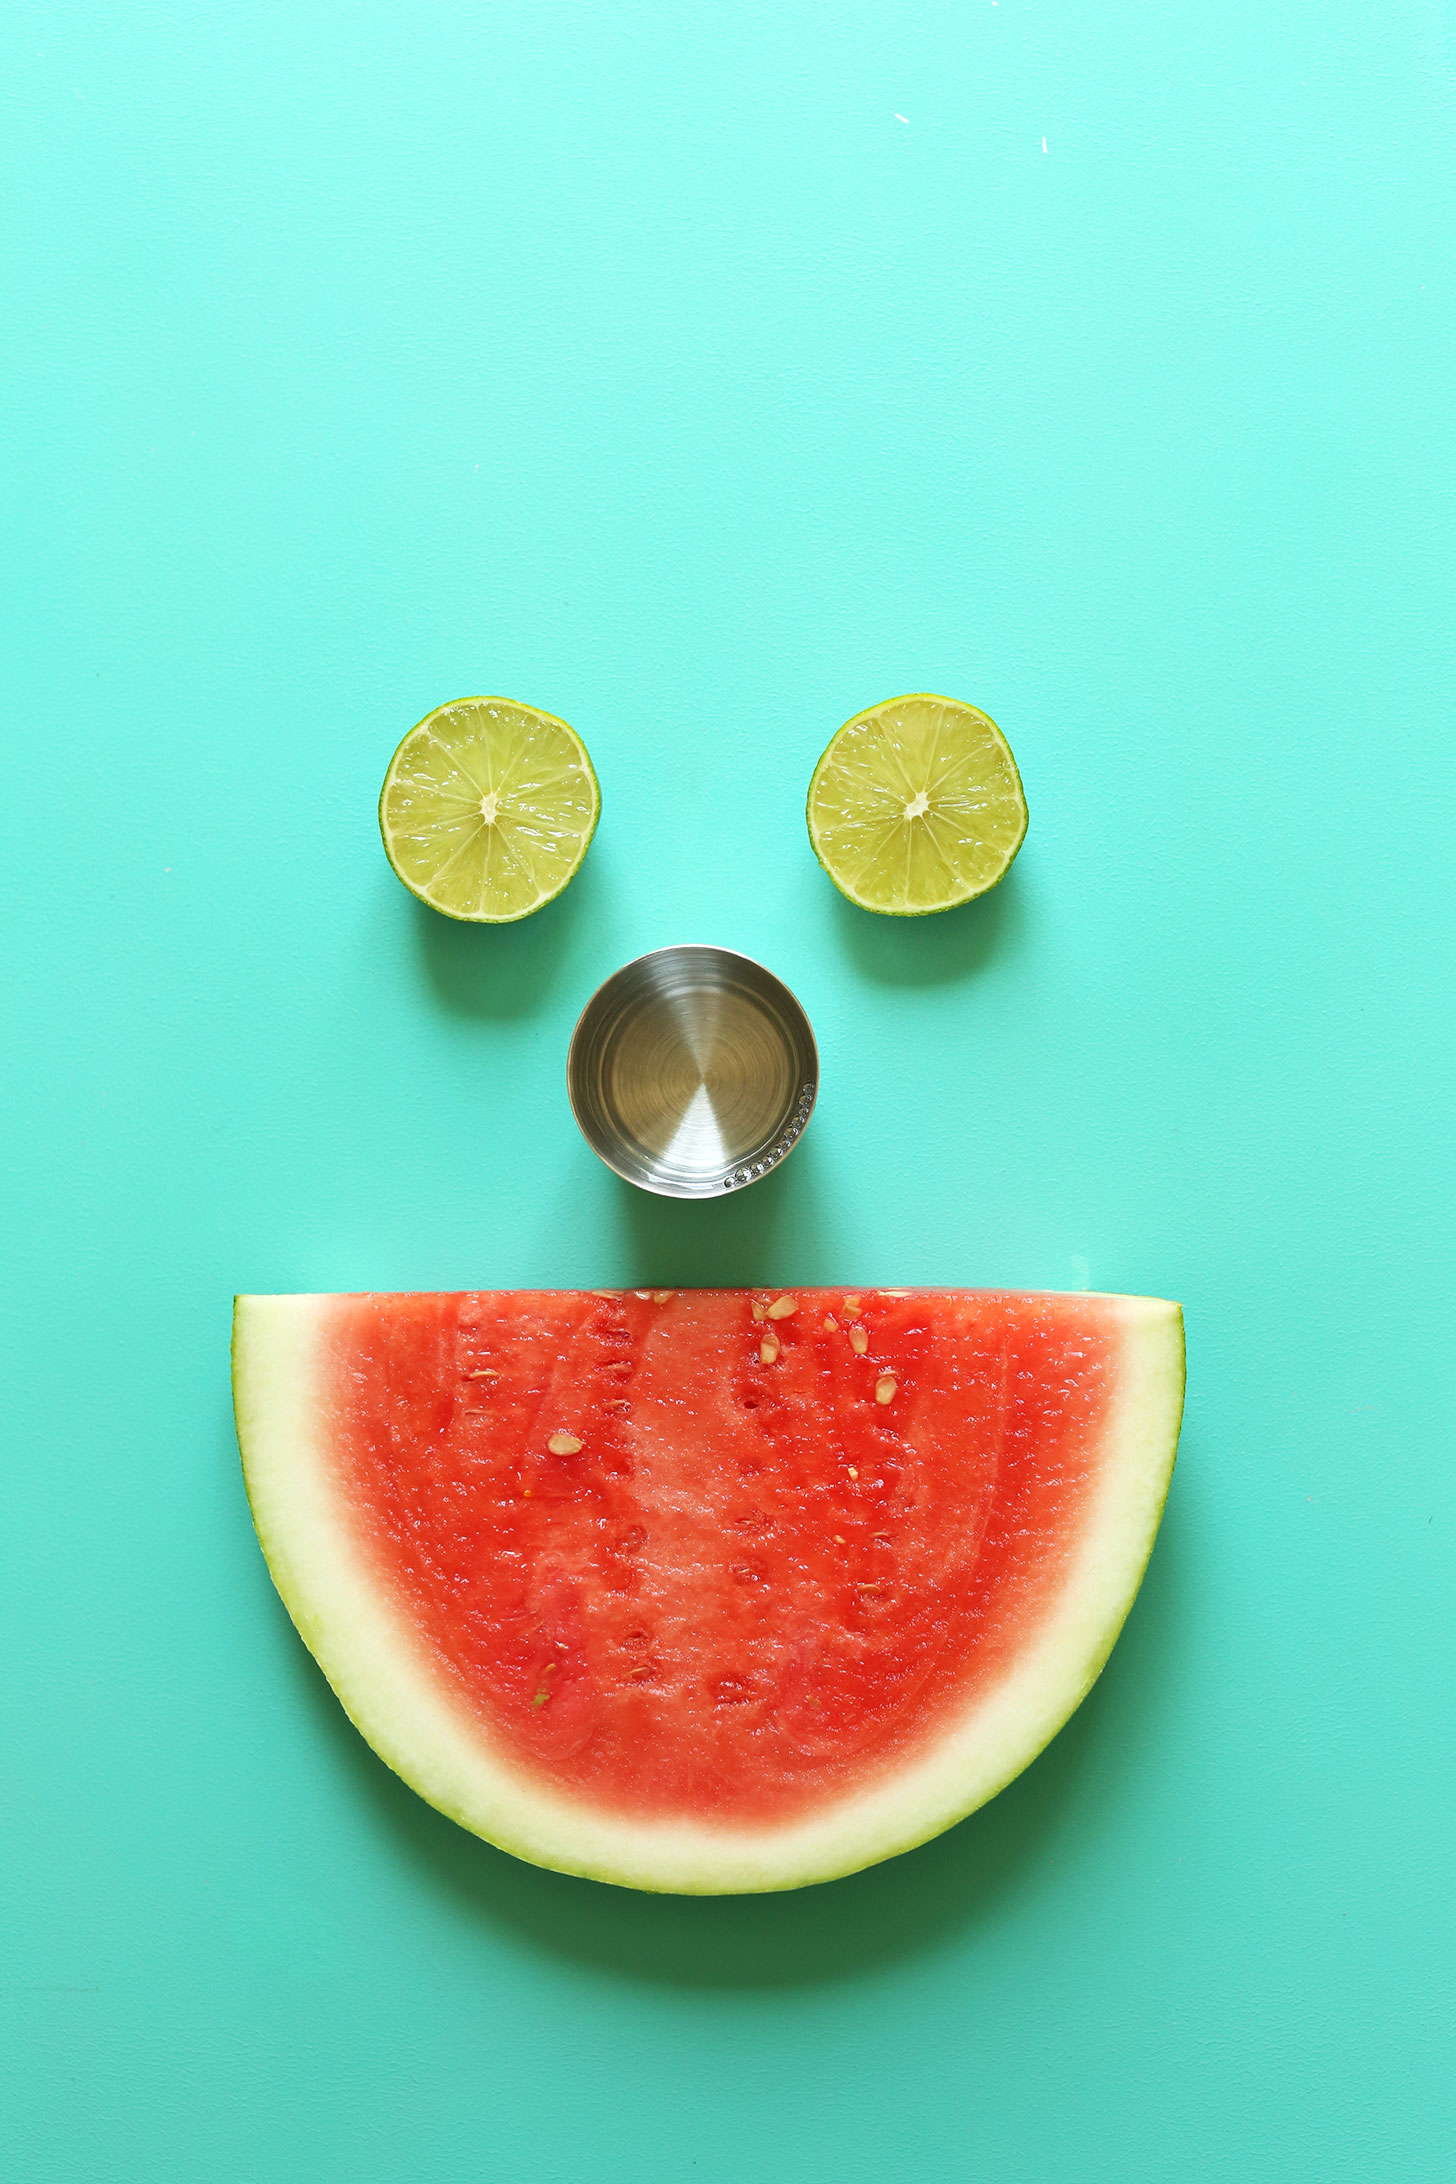 Limes, tequila, and watermelon arranged as a smiley face for Watermelon Margaritas